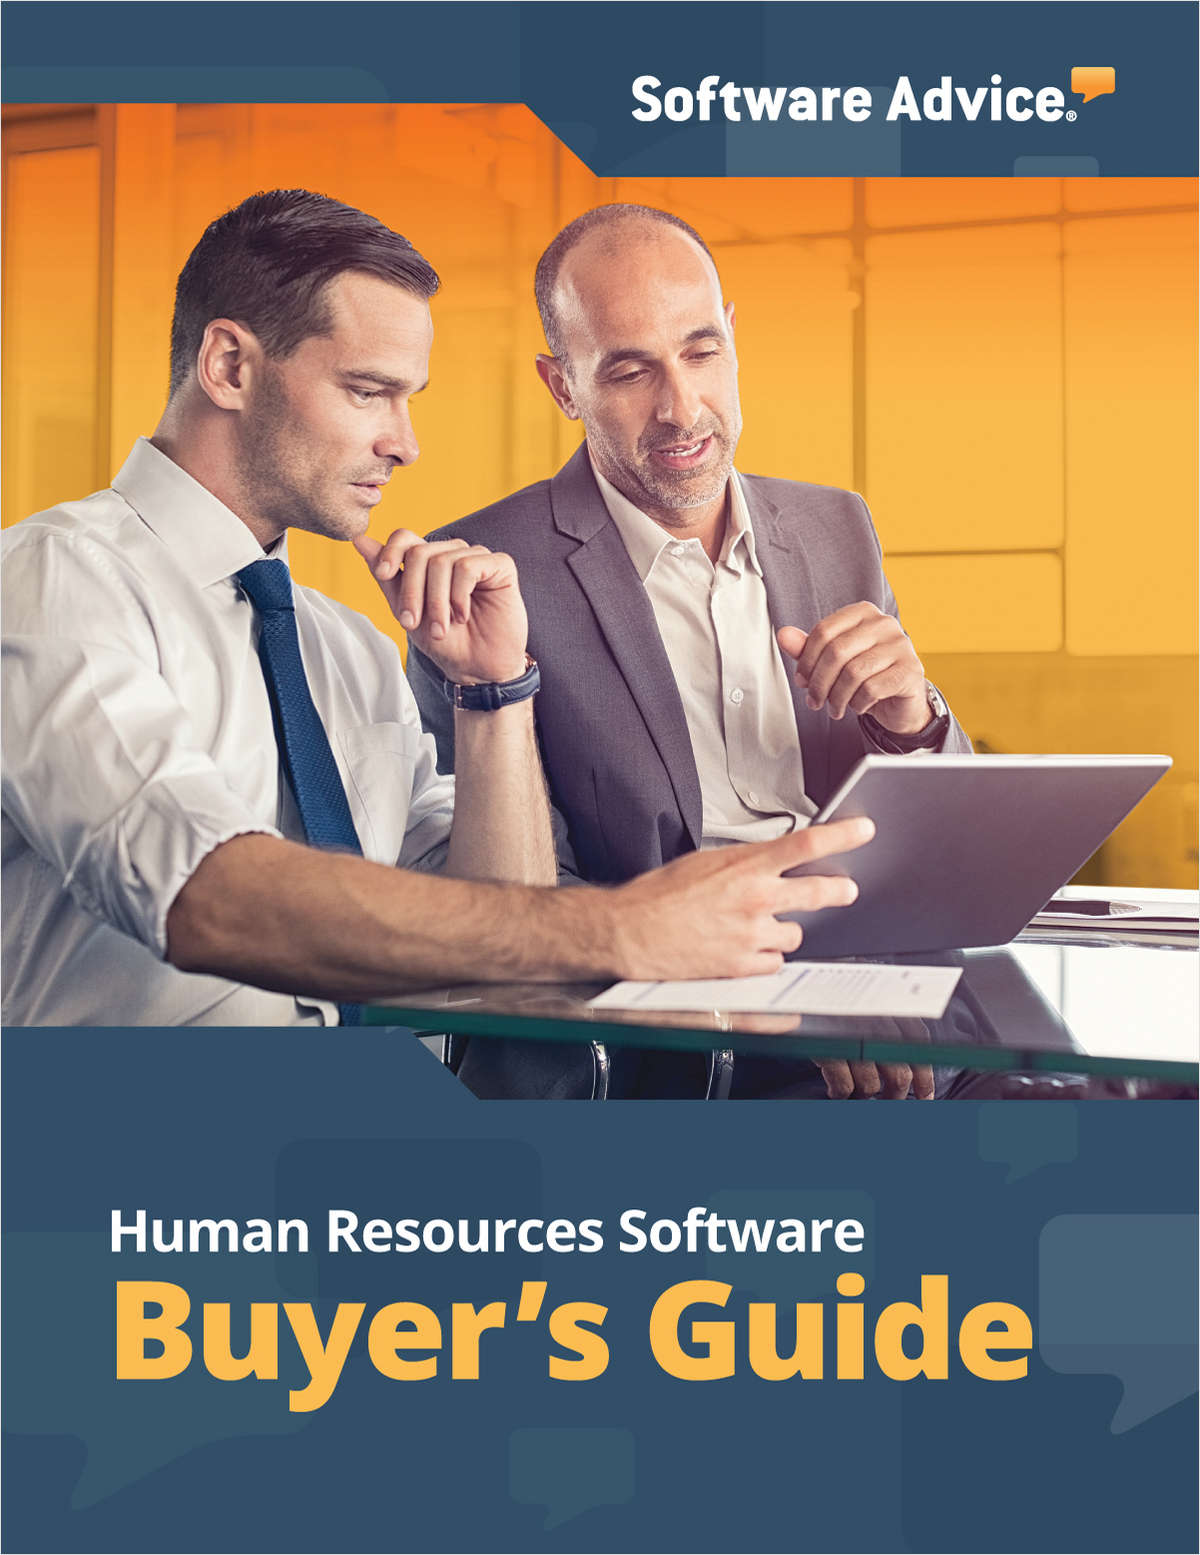 The 2018 Human Resources Buyer's Guide